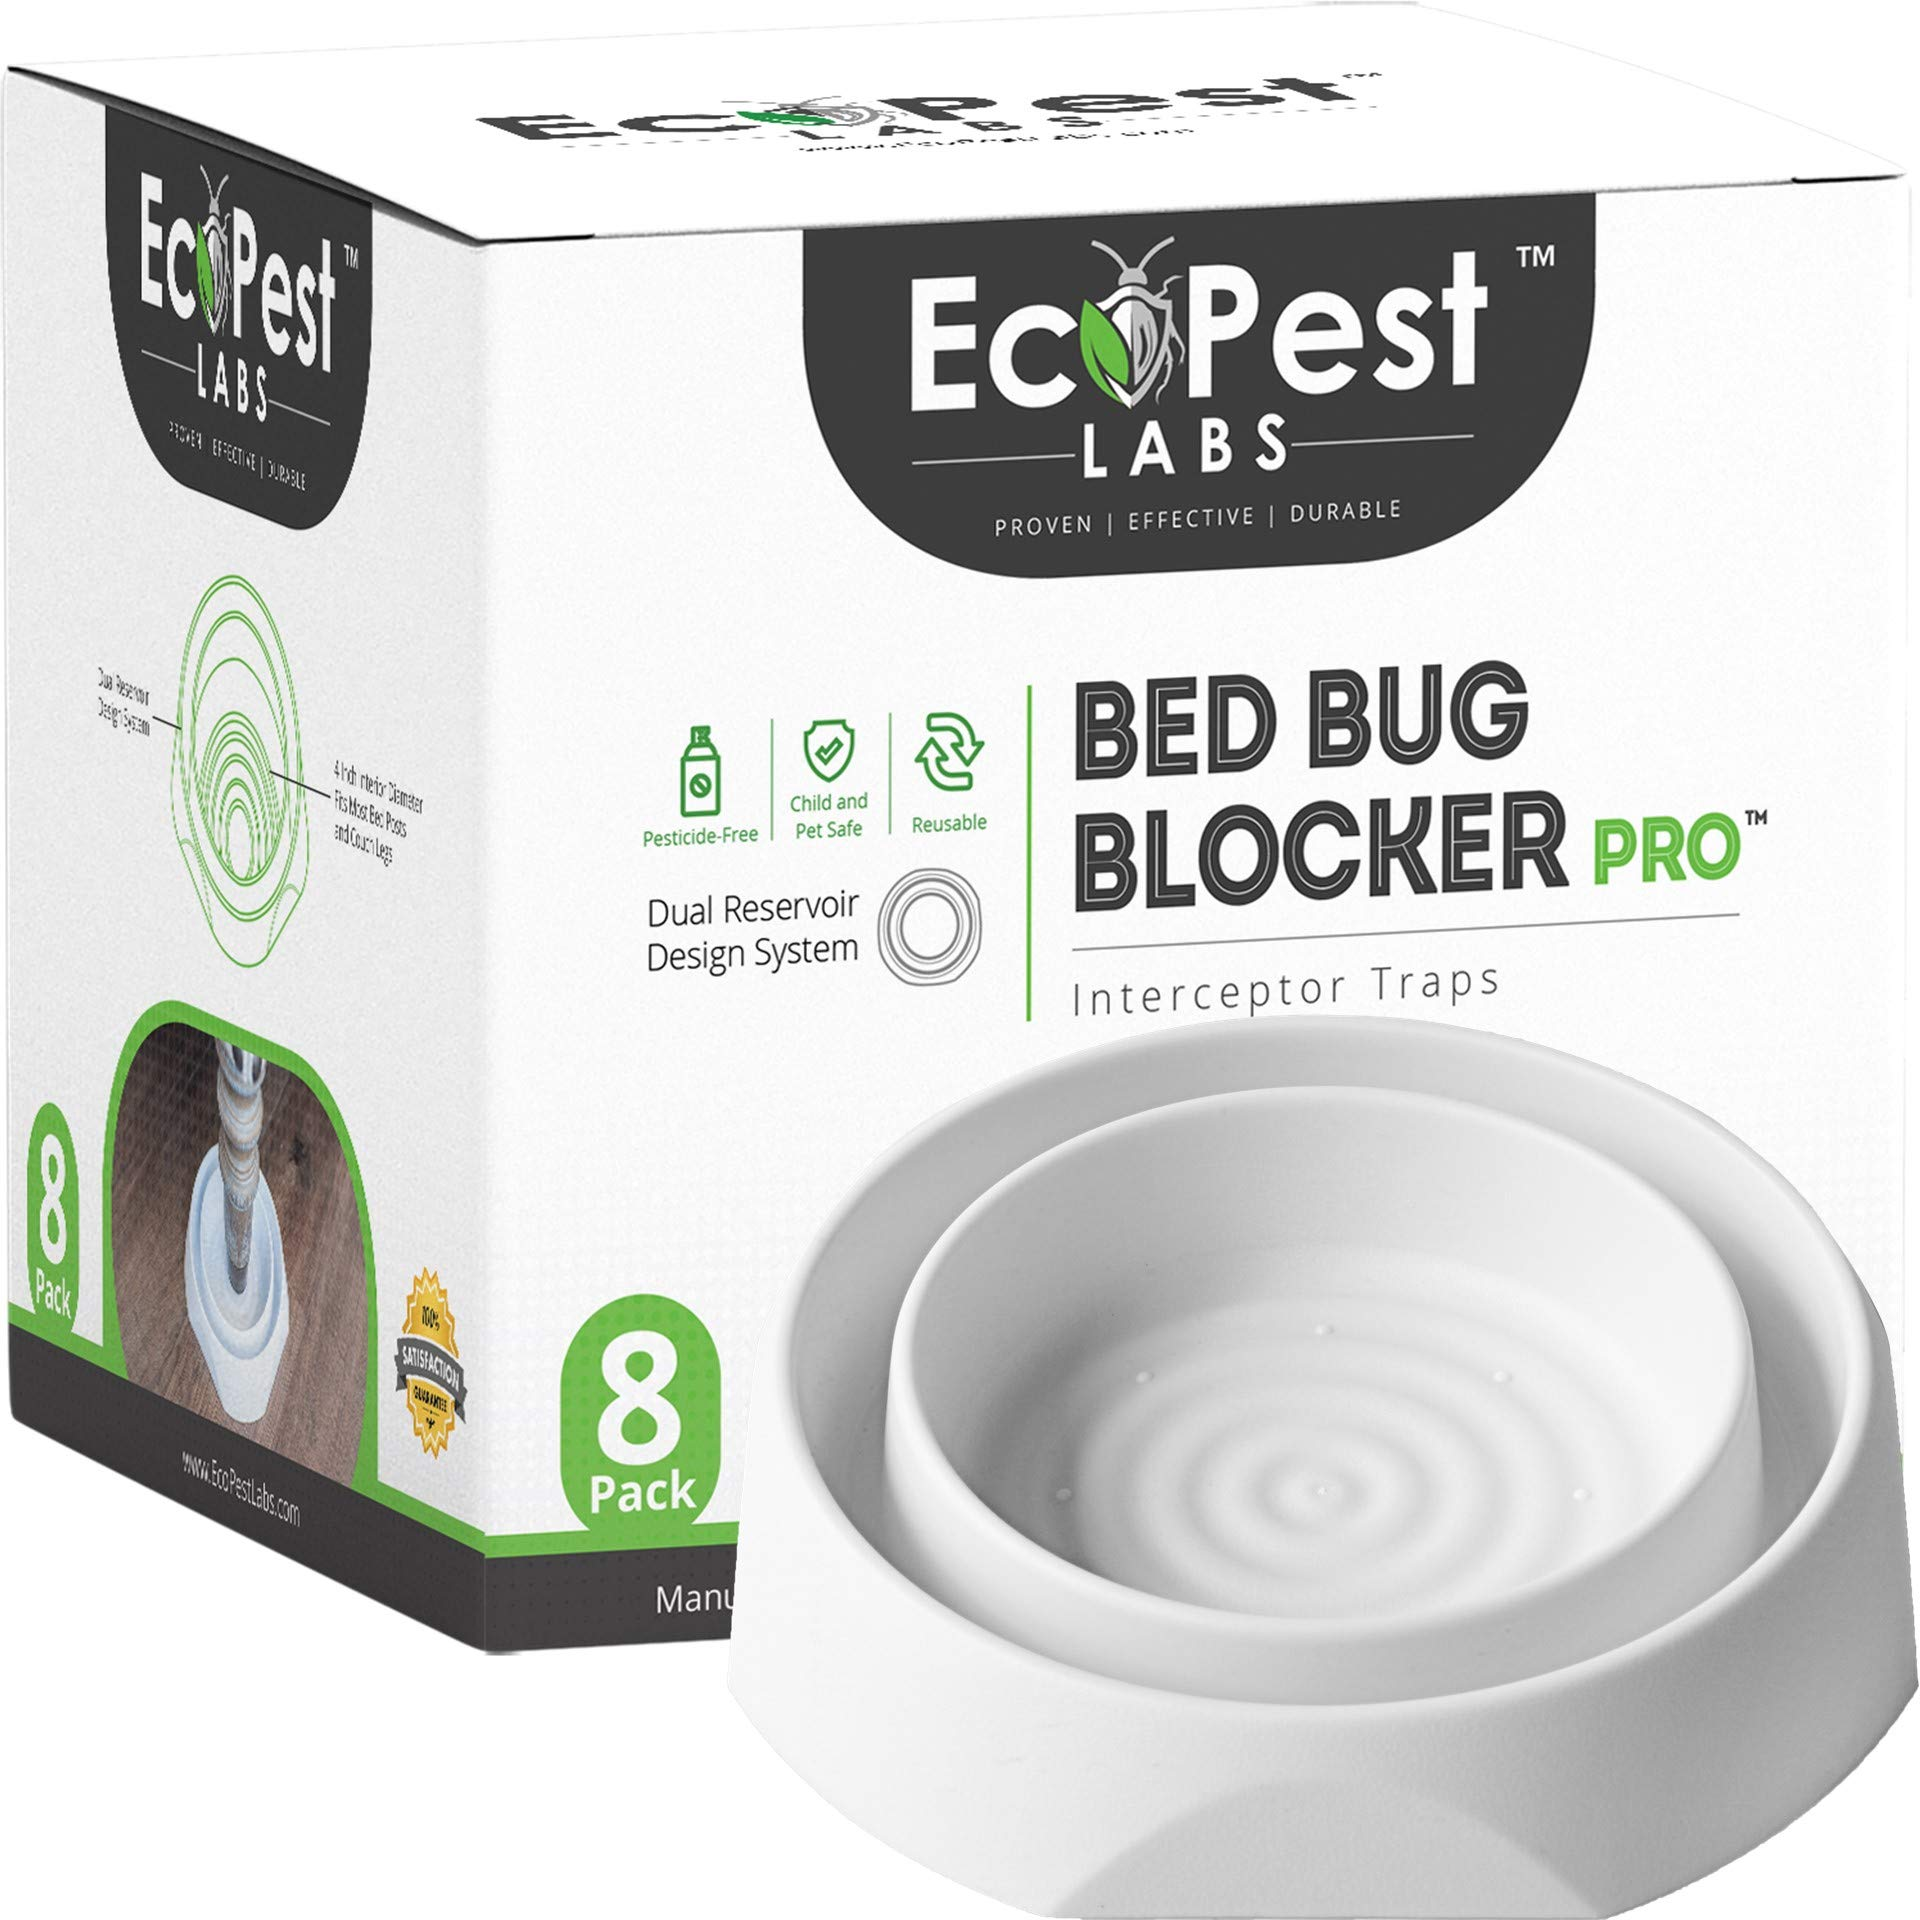 Bed Bug Interceptors - 8 Pack   Bed Bug Blocker (Pro) Interceptor Traps (White)   Eco Friendly Insect Trap for Bed Legs   No Chemicals or Pesticides   Monitor, Detector, and Trap for Bed Bugs